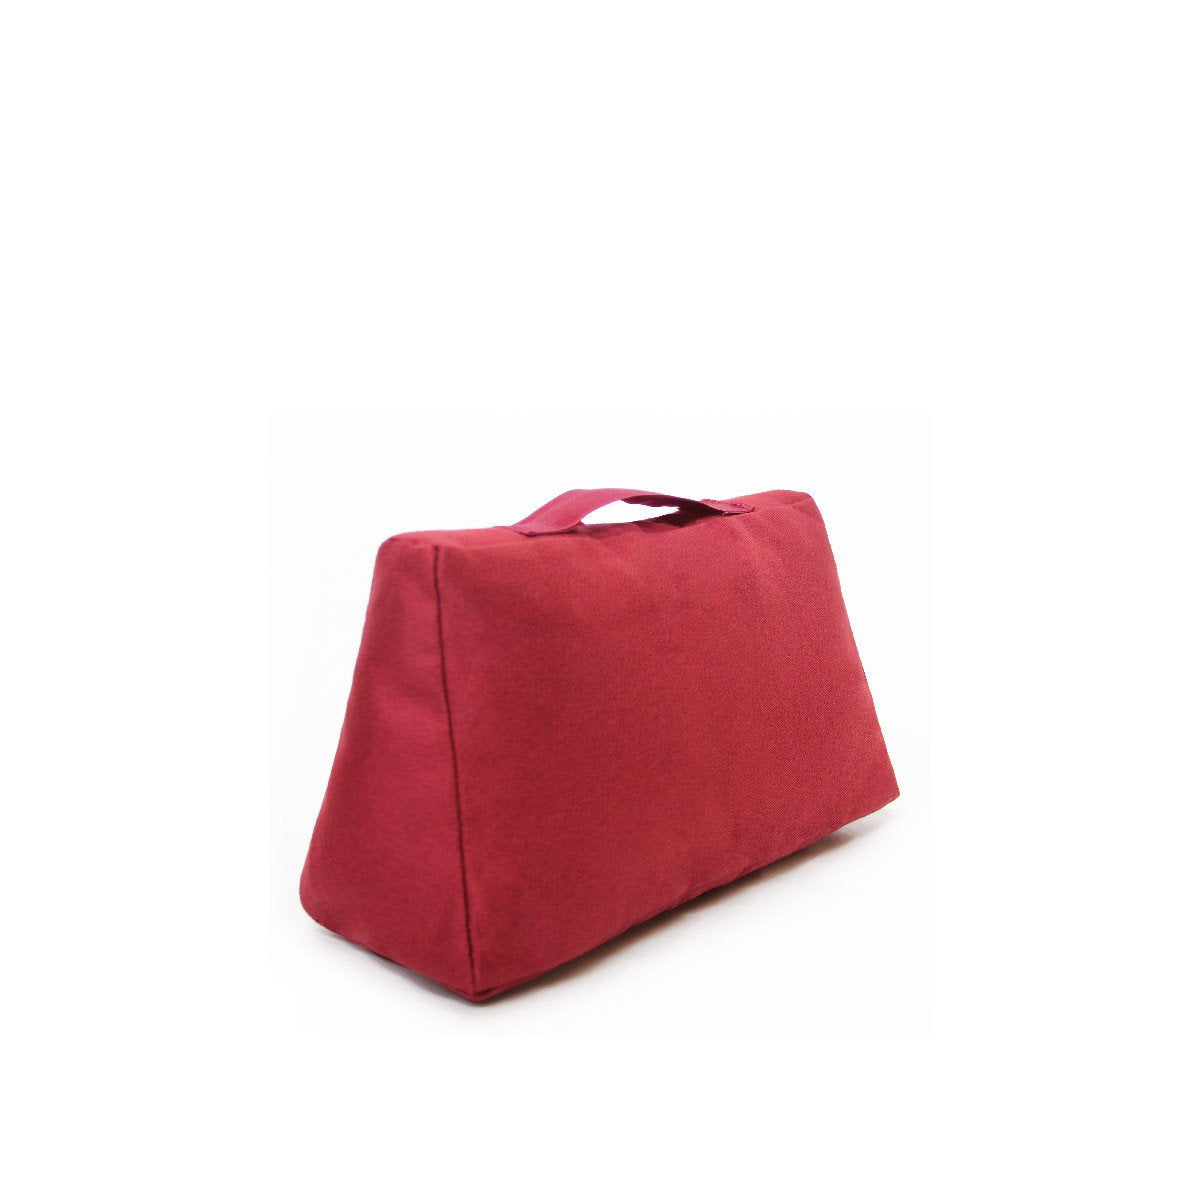 893ab33a90fc ... coupon code bag pillows hermes kelly 28 red ruby 494e2 74b8e